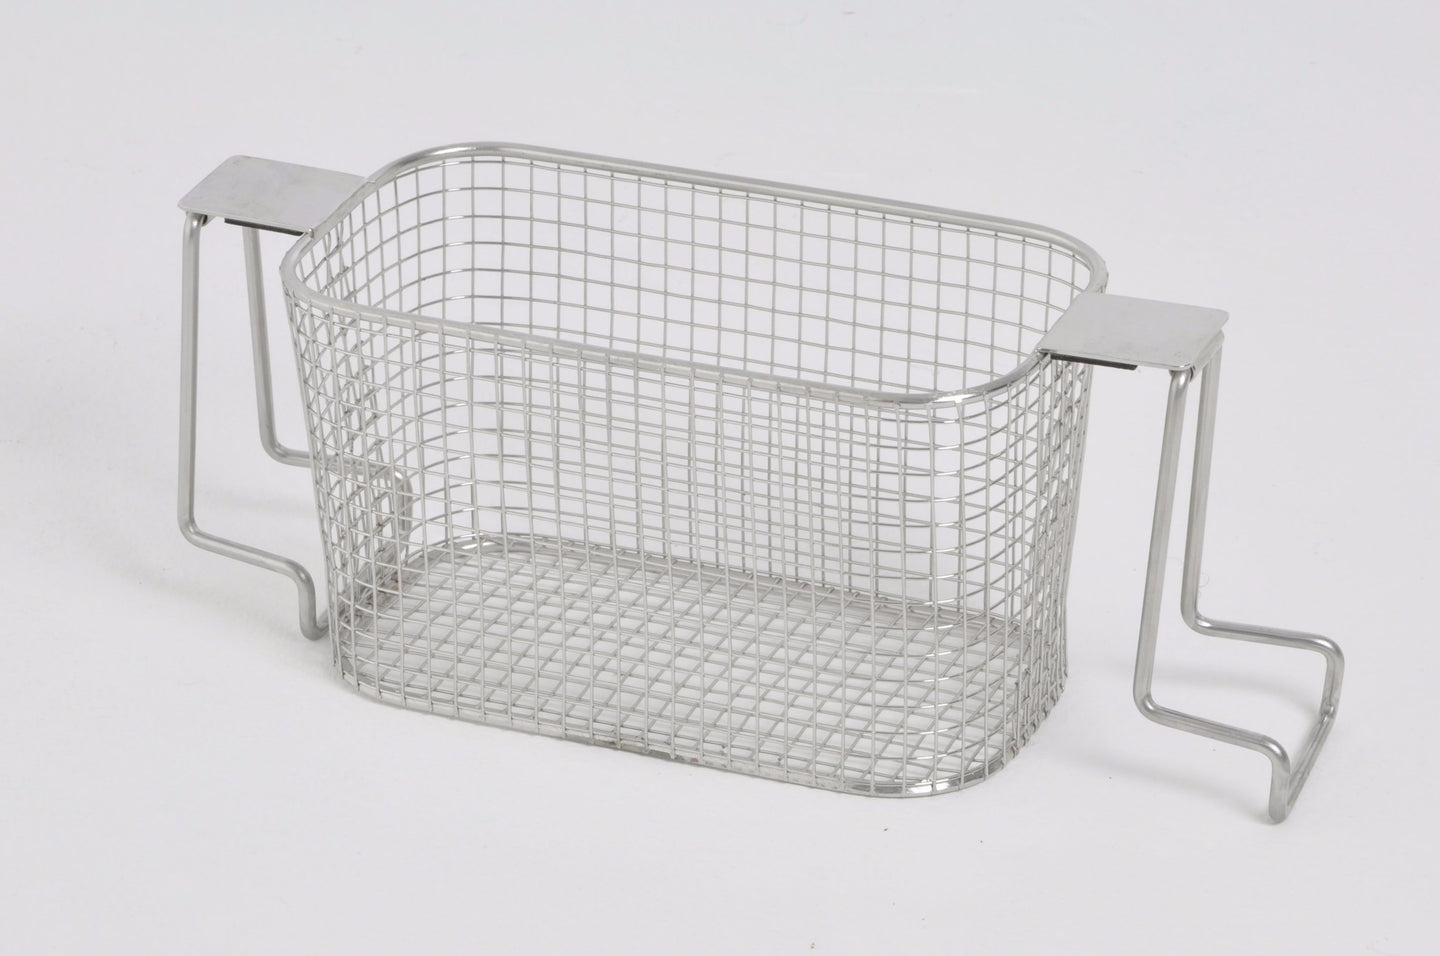 Crest Stainless Steel Mesh Basket For P230 | SSMB230DH - leadsonics